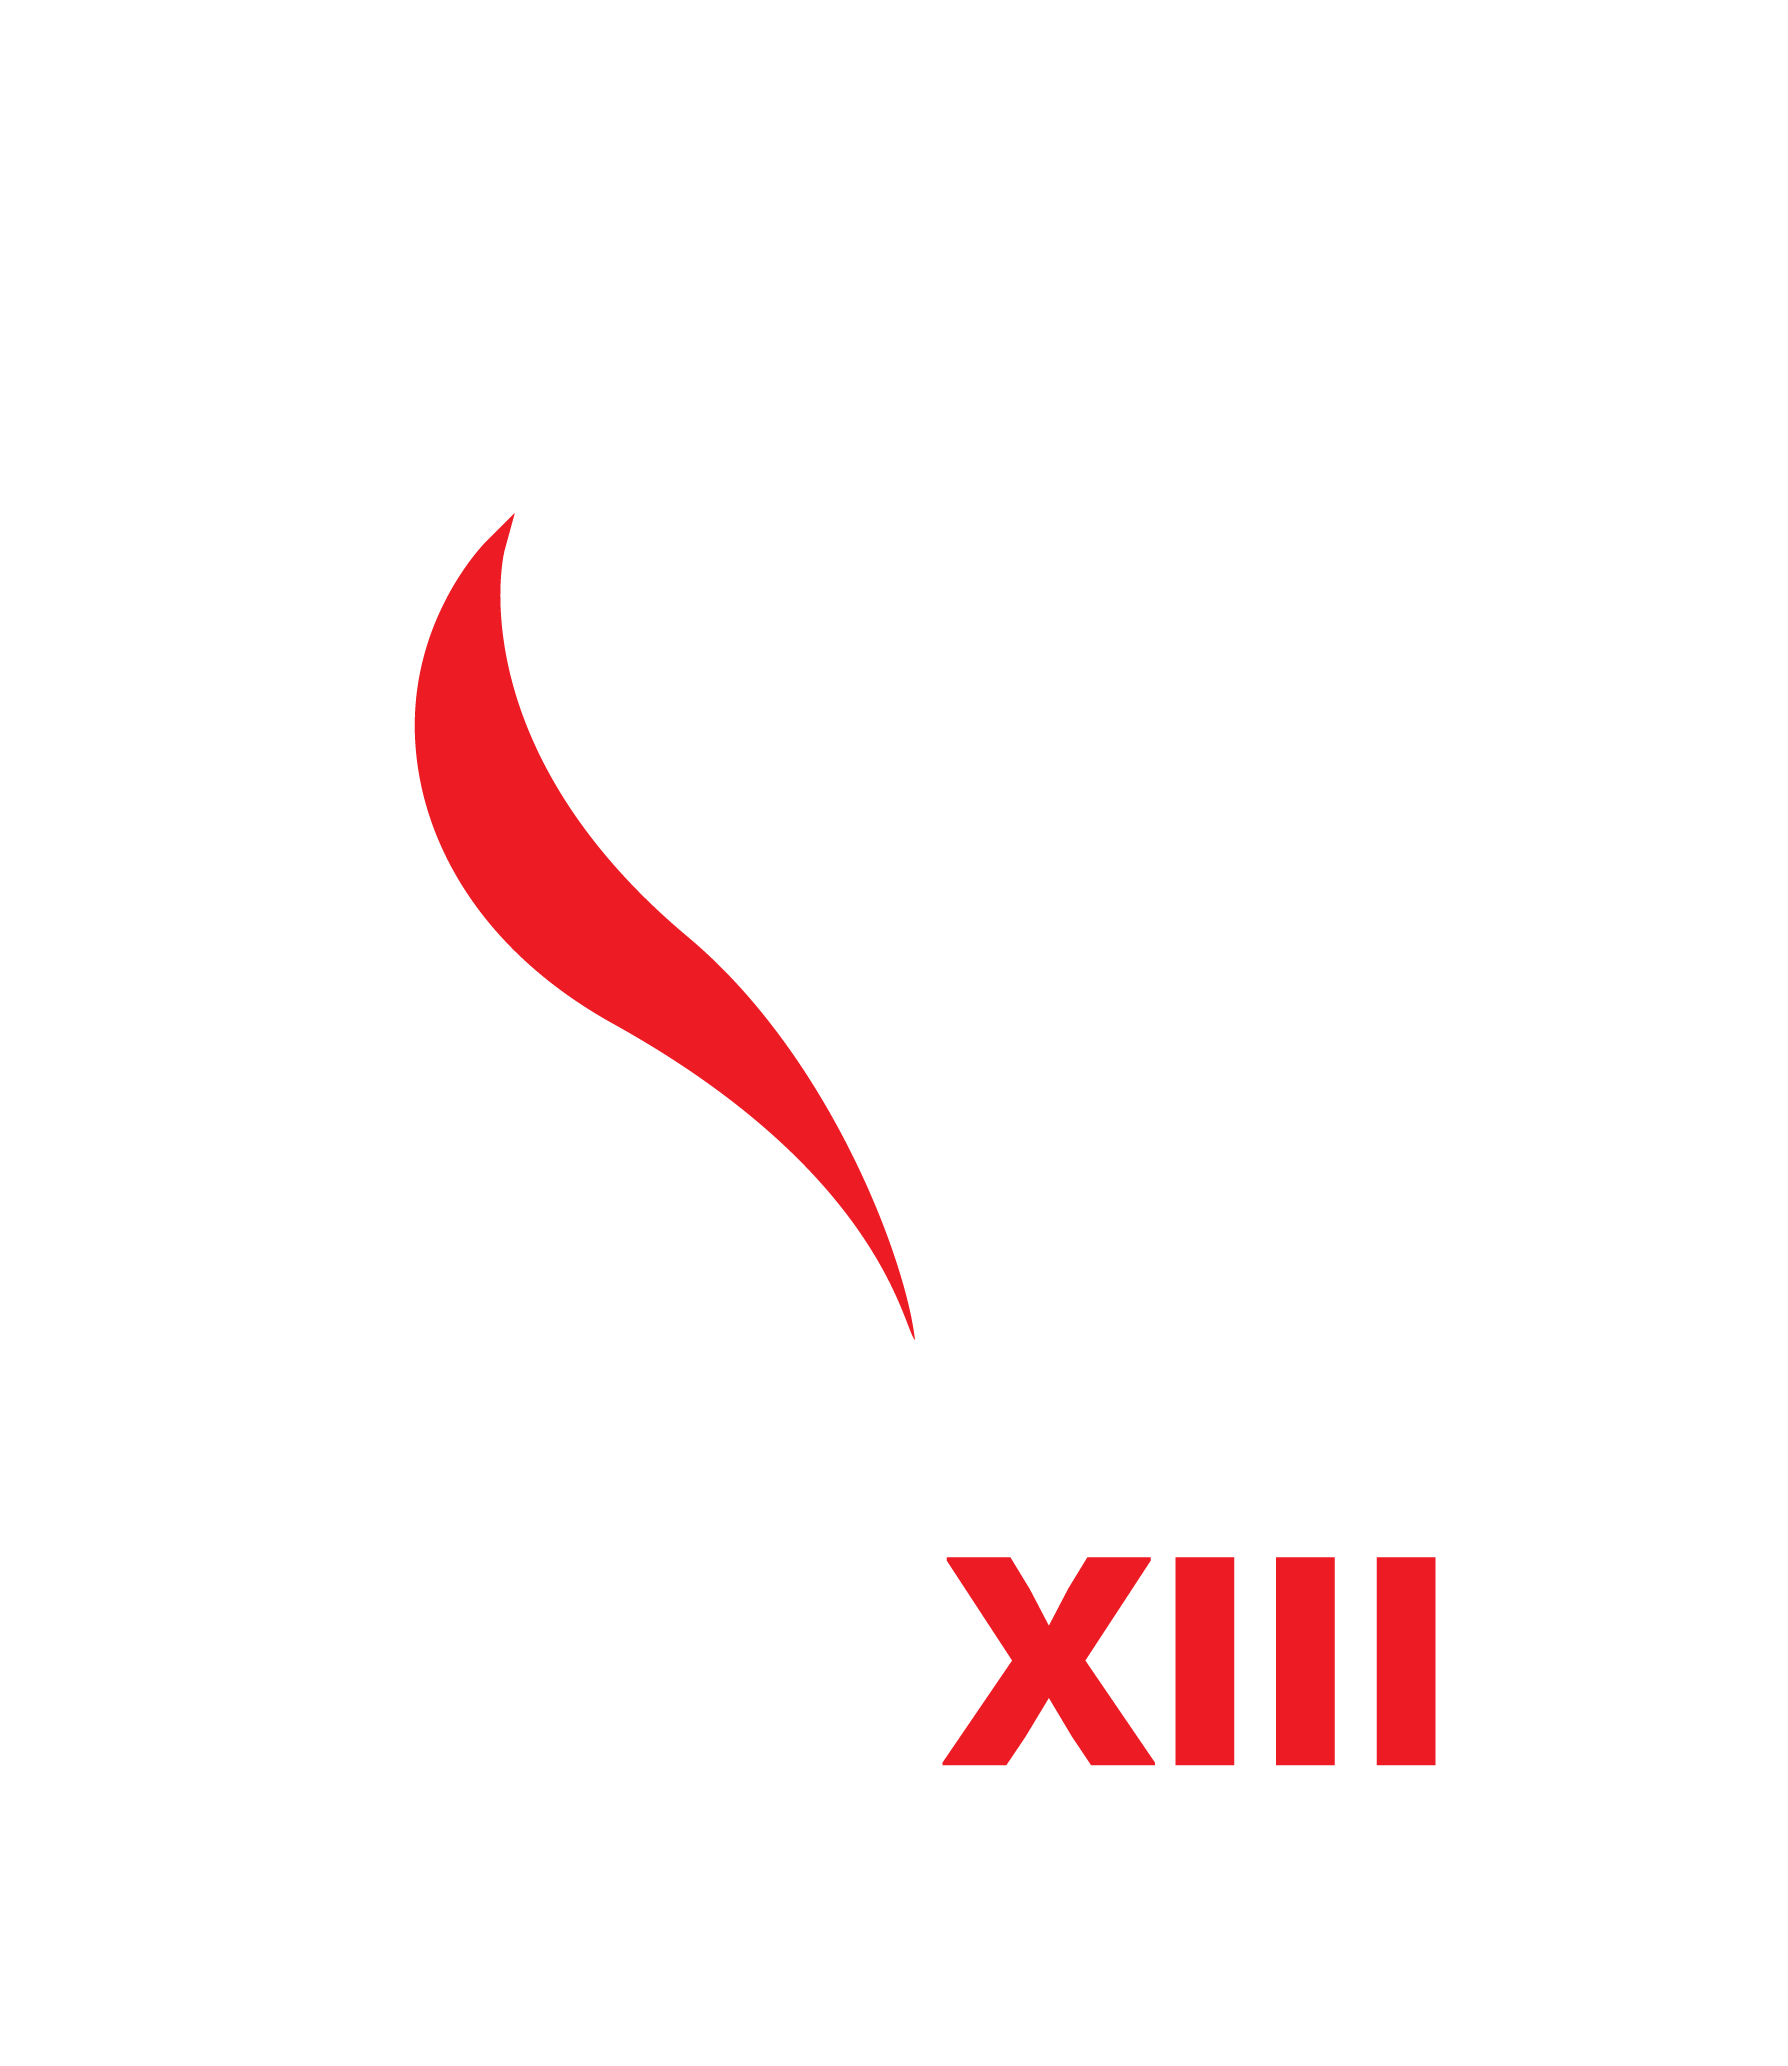 logo-FFRXIII-2017-04-transparent